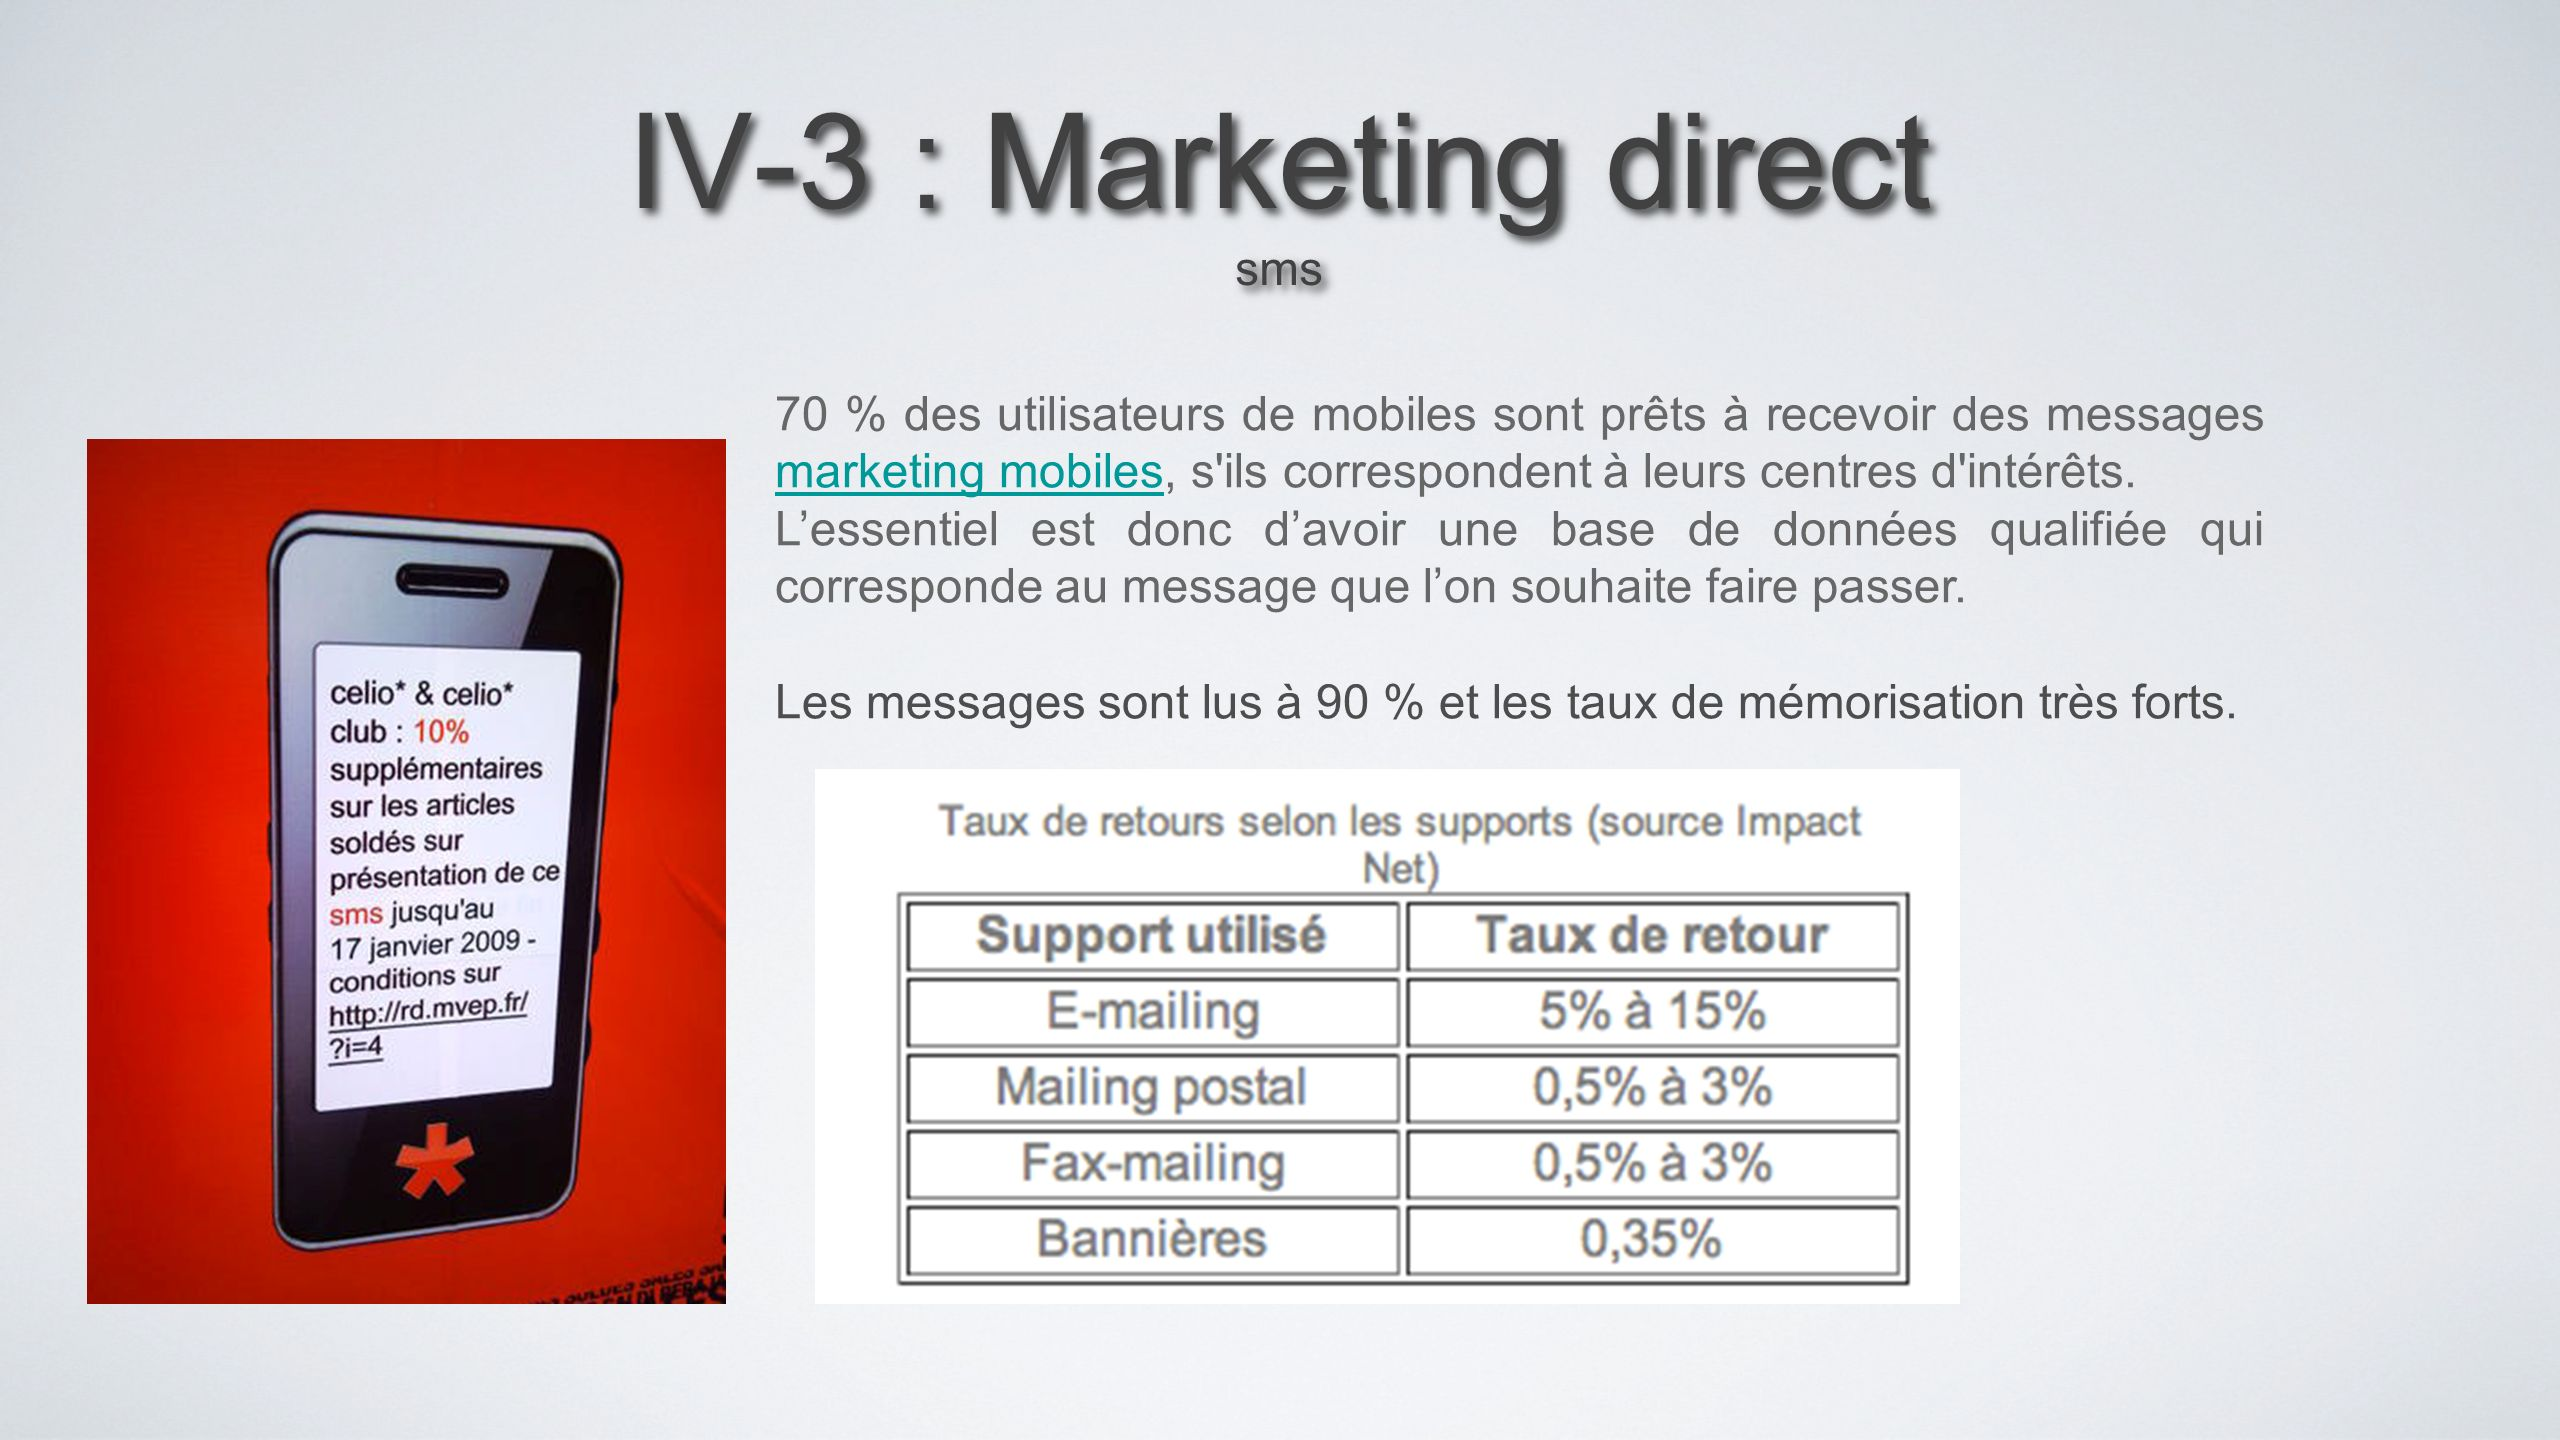 IV-3 : Marketing direct sms